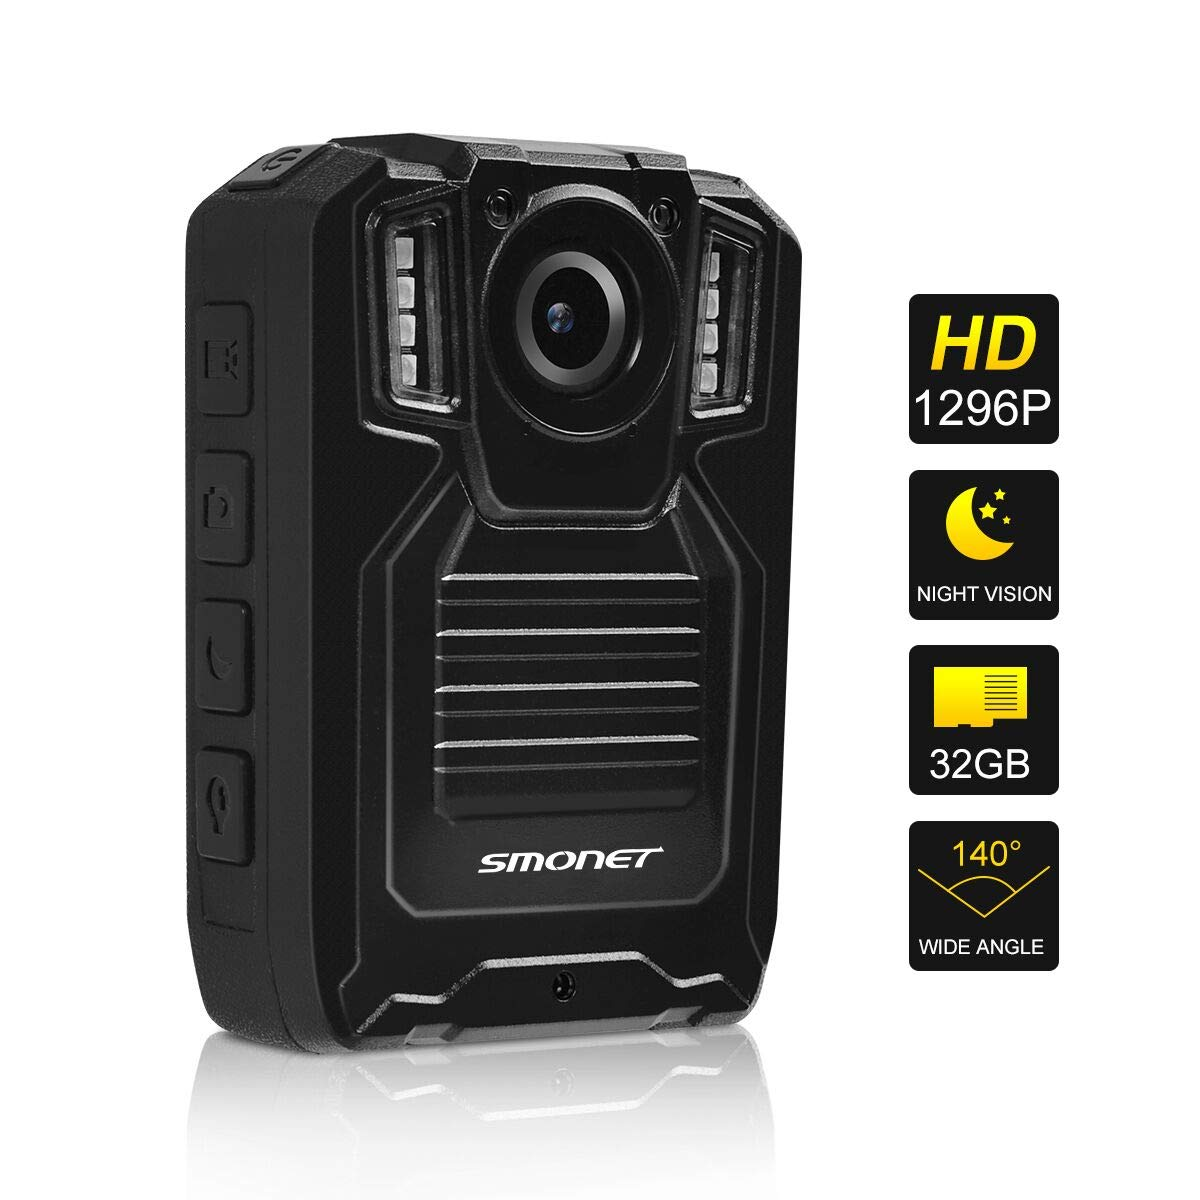 SMONET 1296P Body Camera with Audio, Multifunctional Police Body Cameras for Law Enforcement,Security Guard Body Camera,Waterproof Body Worn Camera with Night Vision,2 Inch Display Video(32GB) by SMONET